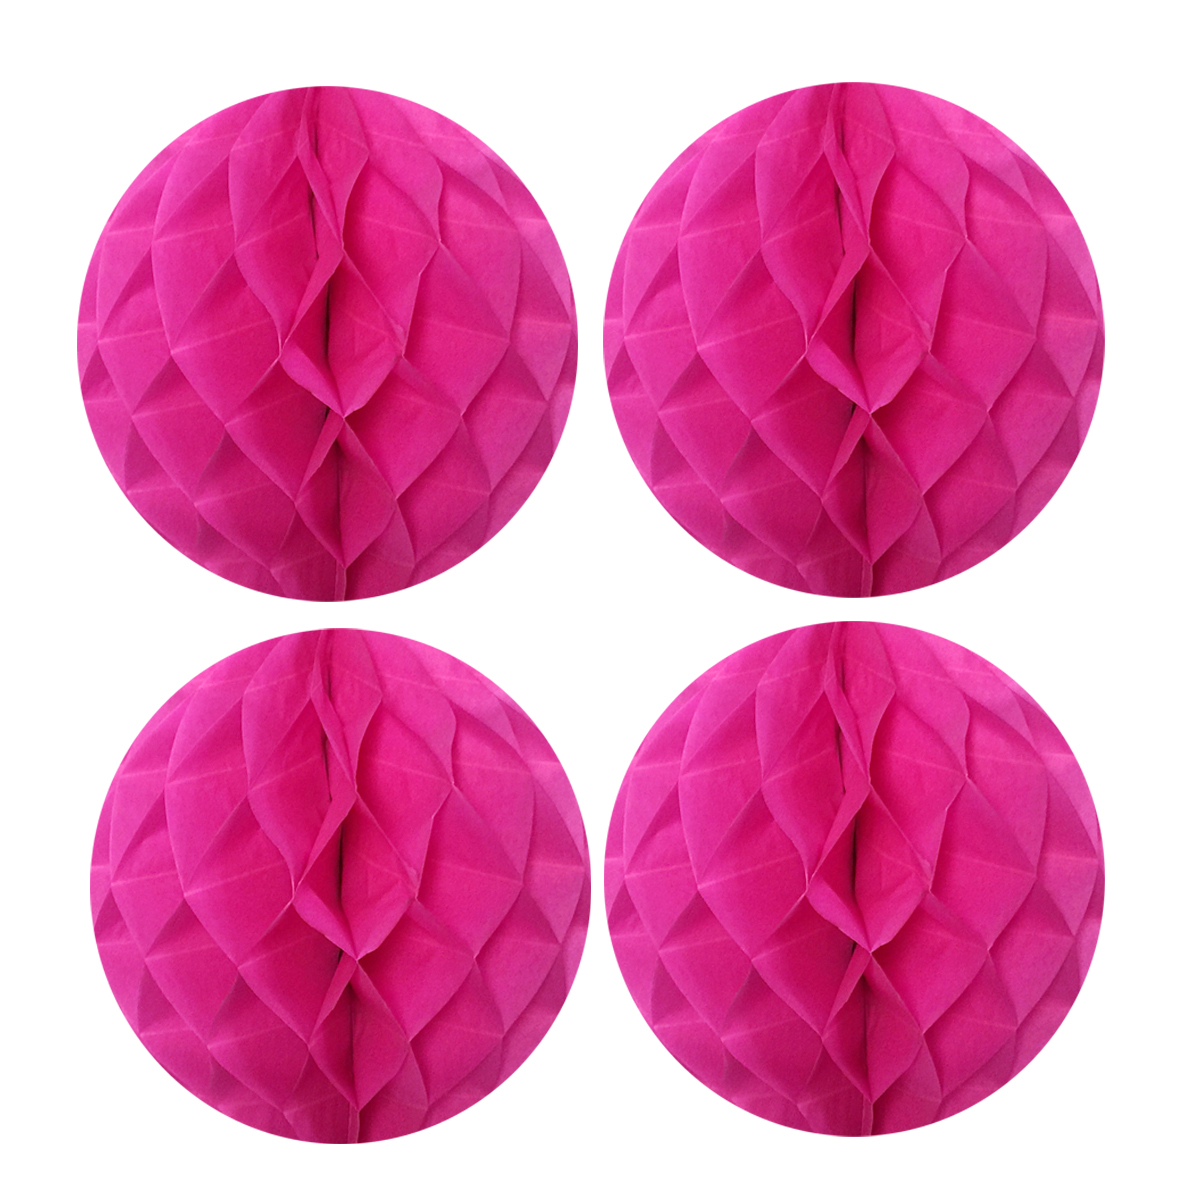 "Wrapables® 8"" Set of 4 Tissue Honeycomb Ball Party Decorations for Weddings, Birthday Parties, Baby Showers, and Nursery Décor, Hot Pink"